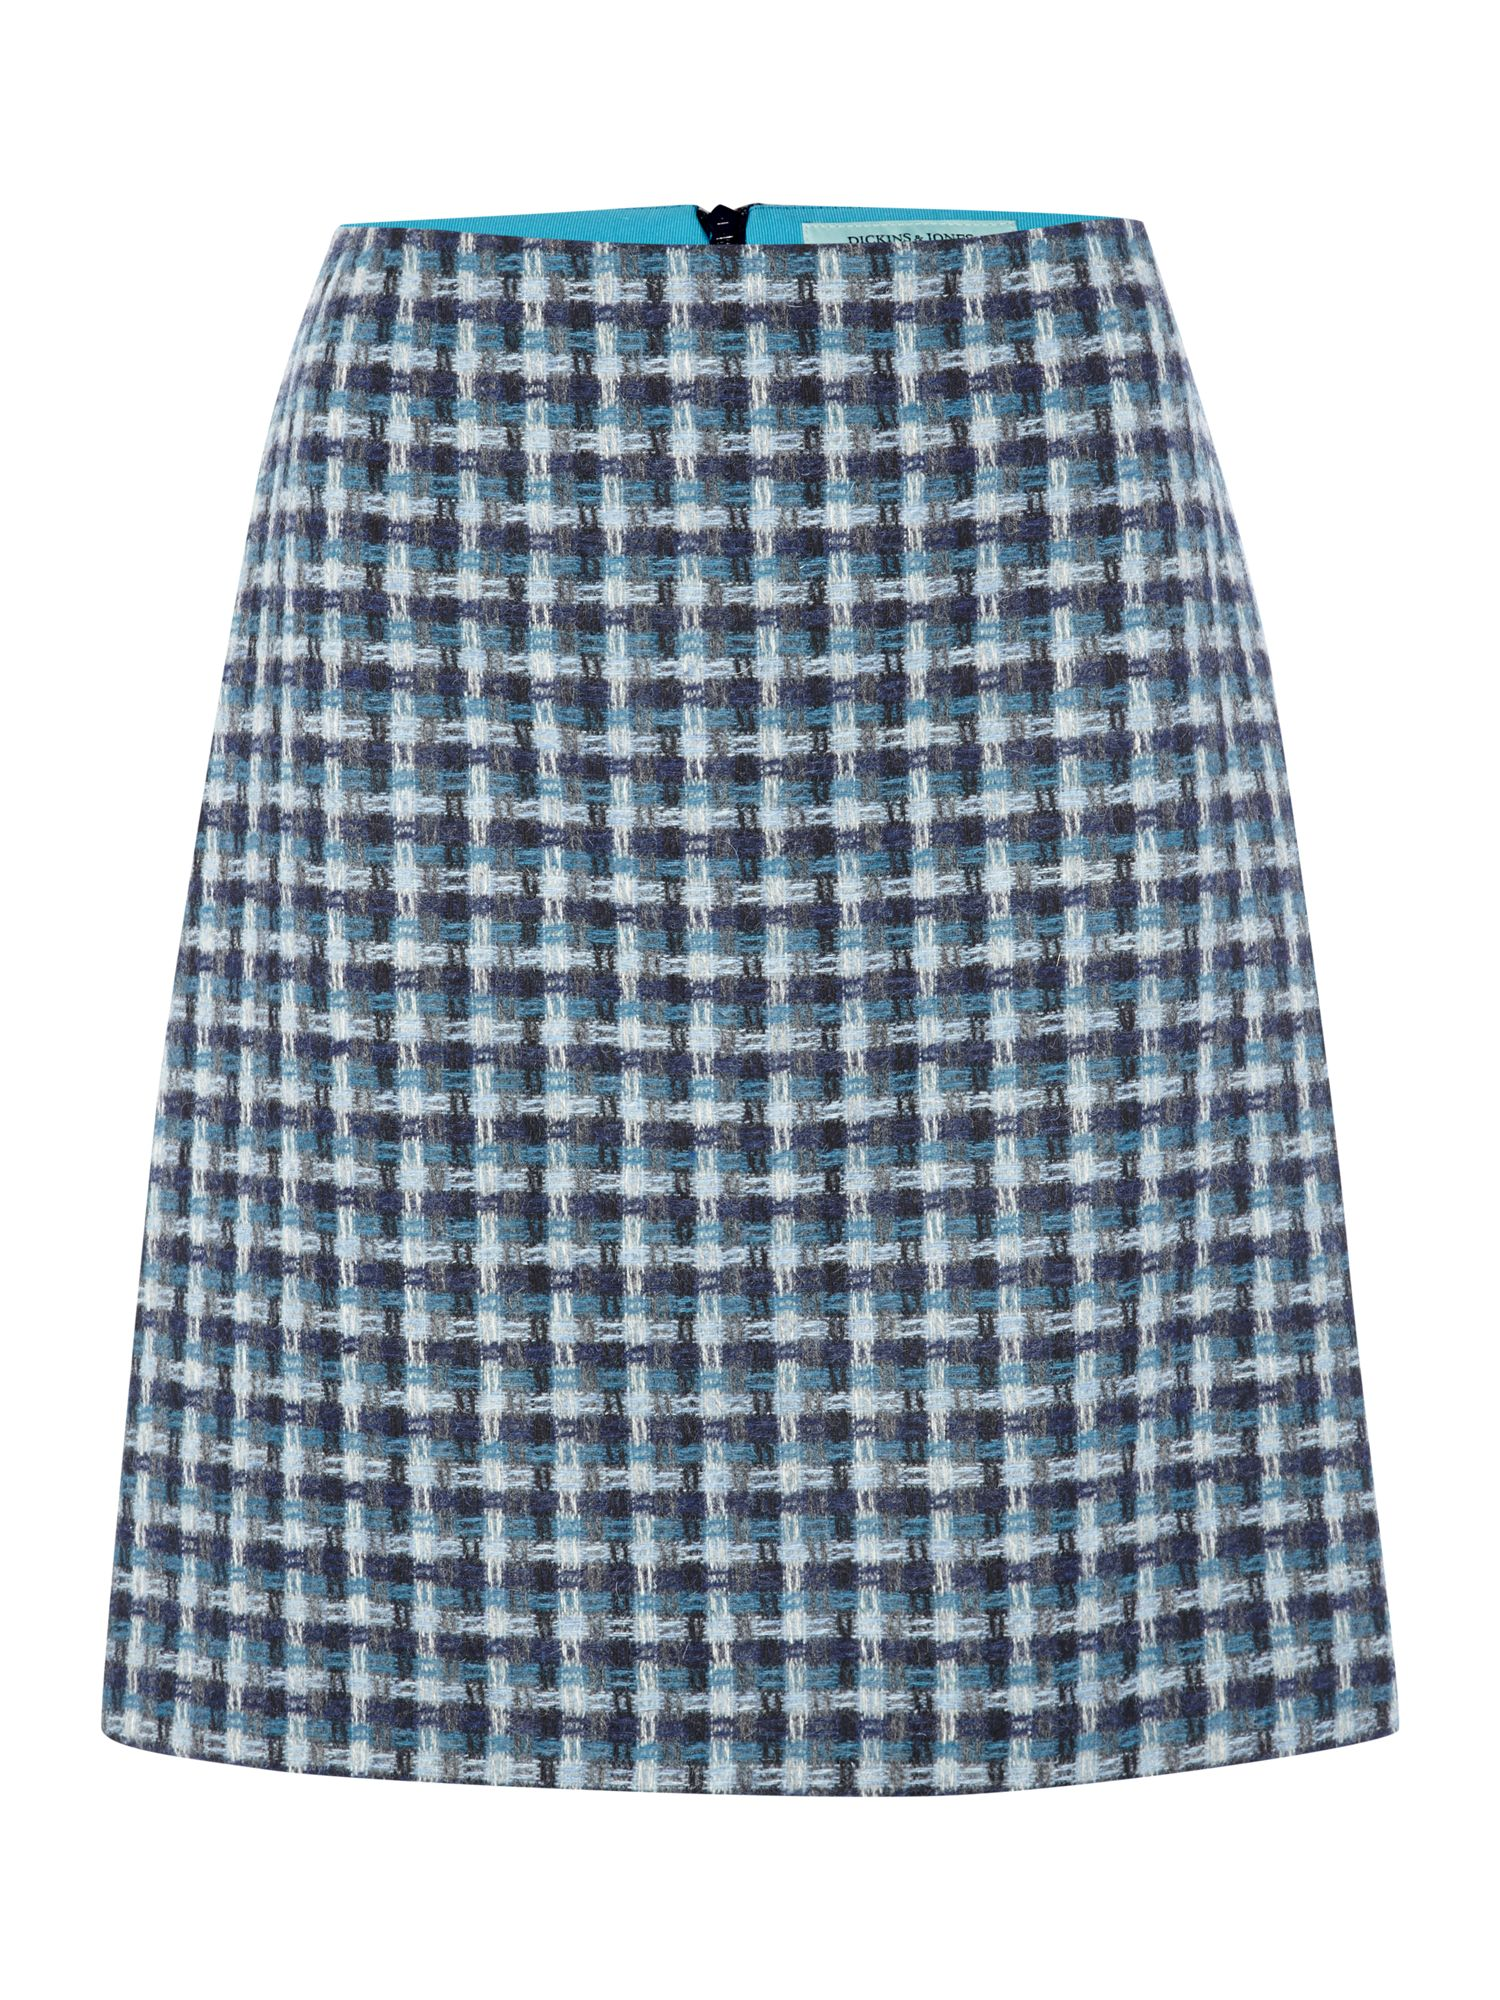 British wool pattern skirt